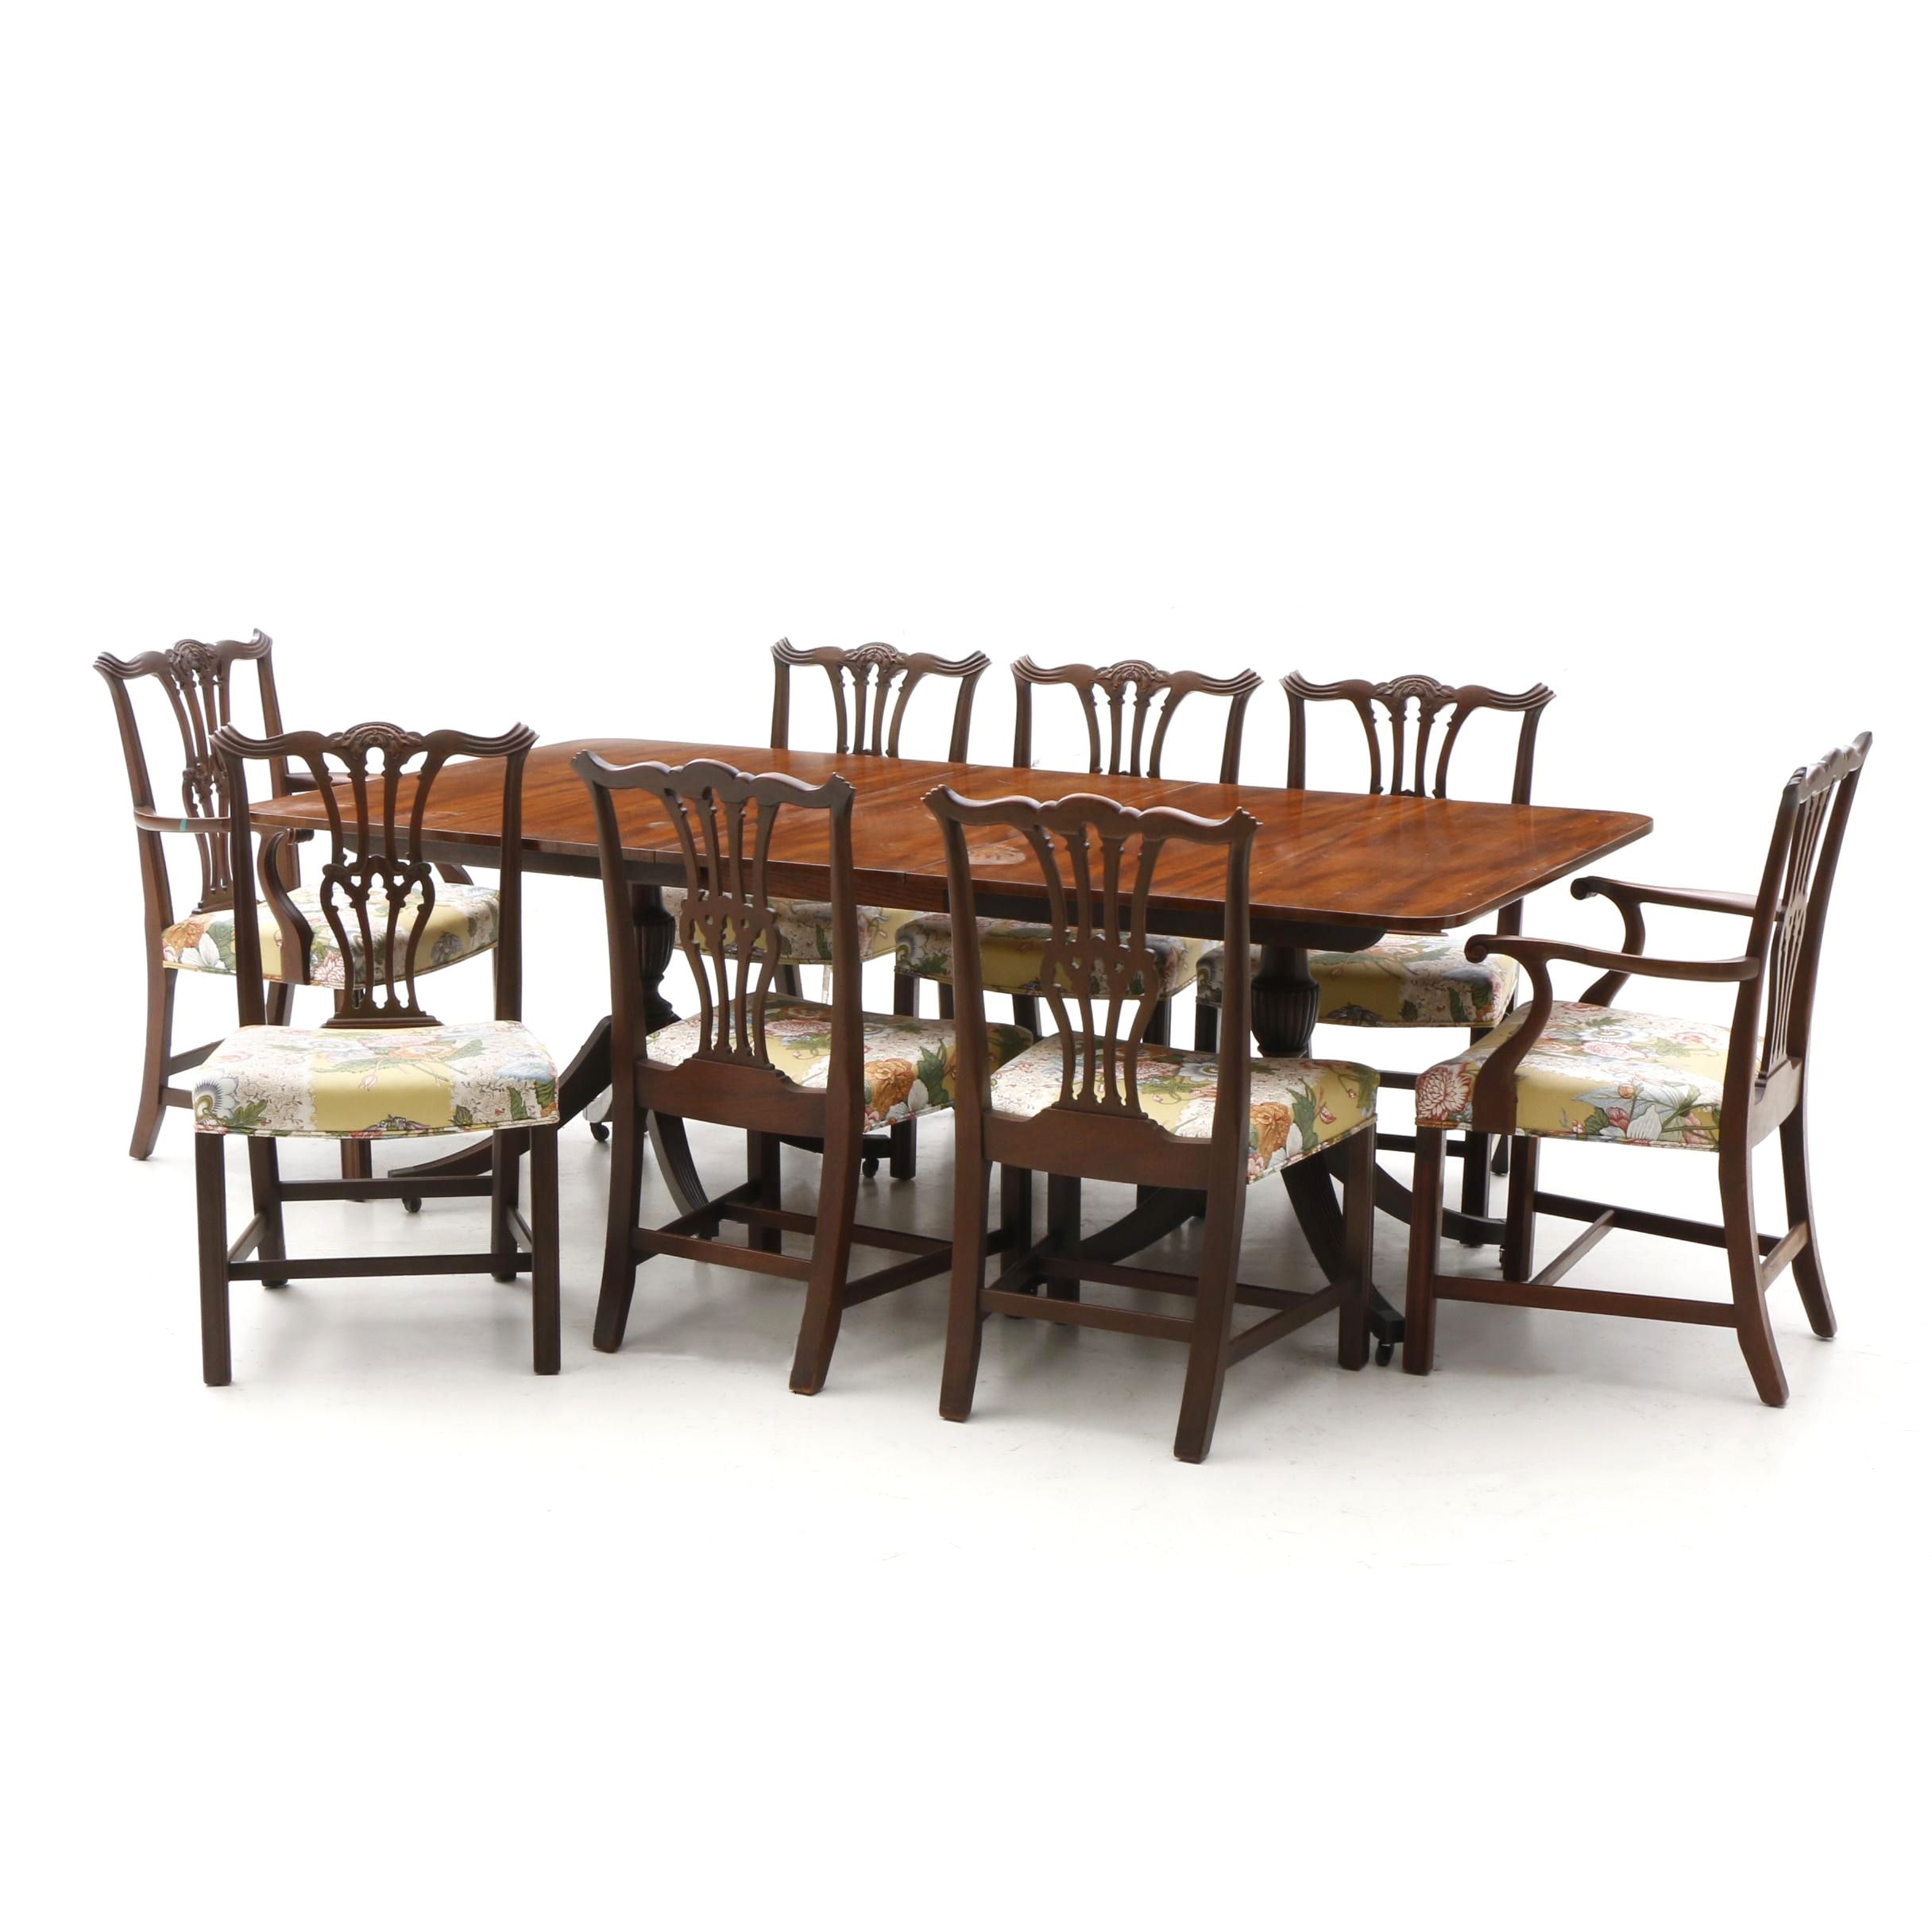 Chippendale Style Dining Table with Eight Chairs